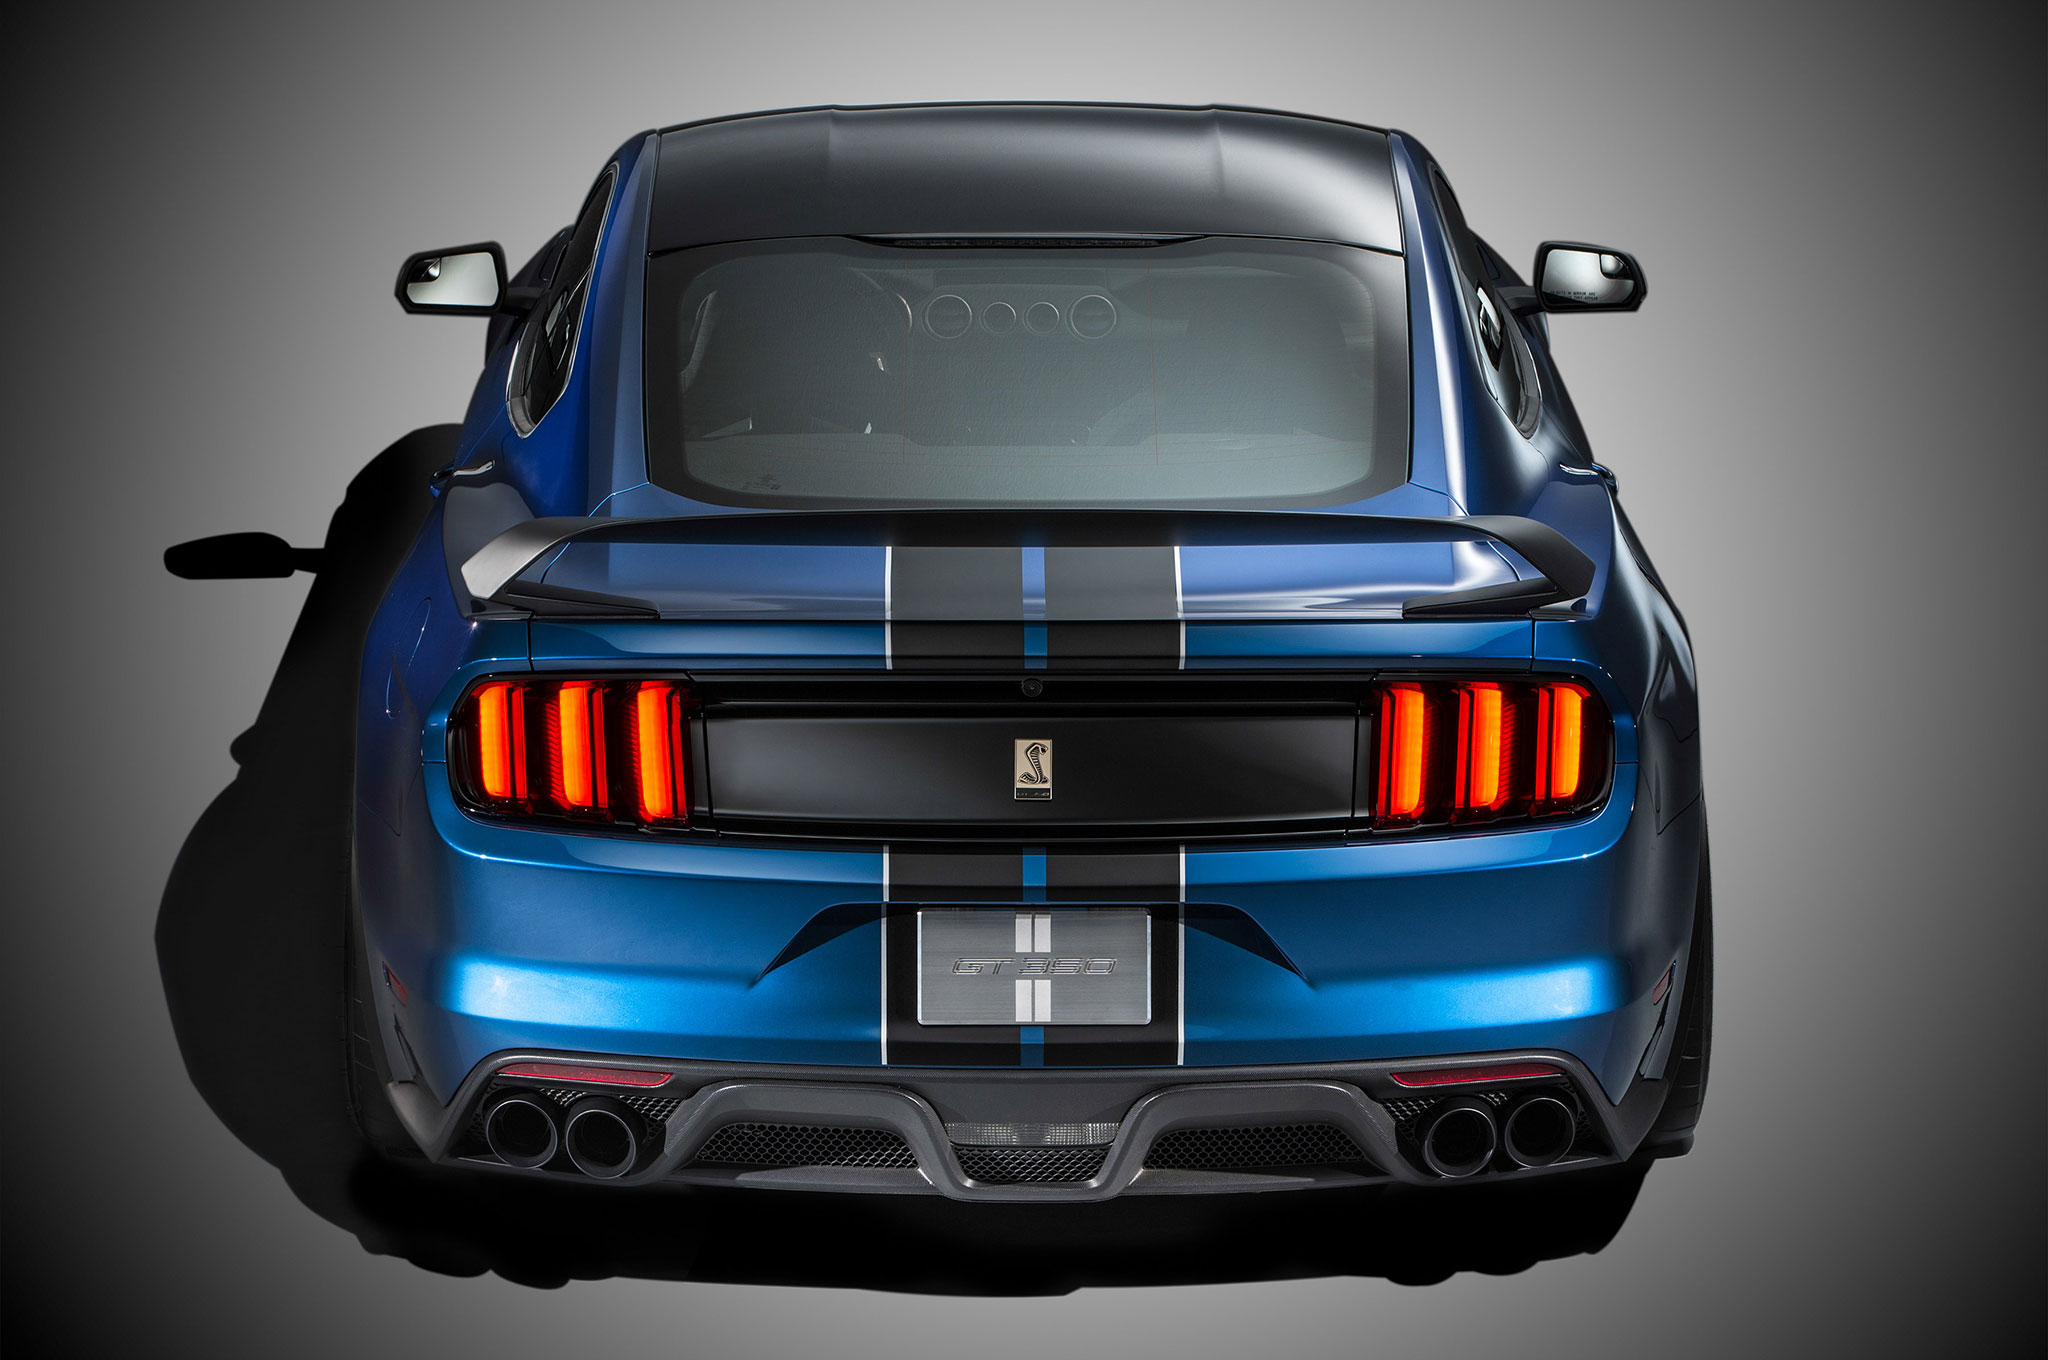 10 Things To Know About The Ford Shelby Gt350 Mustang S V 8 Engine